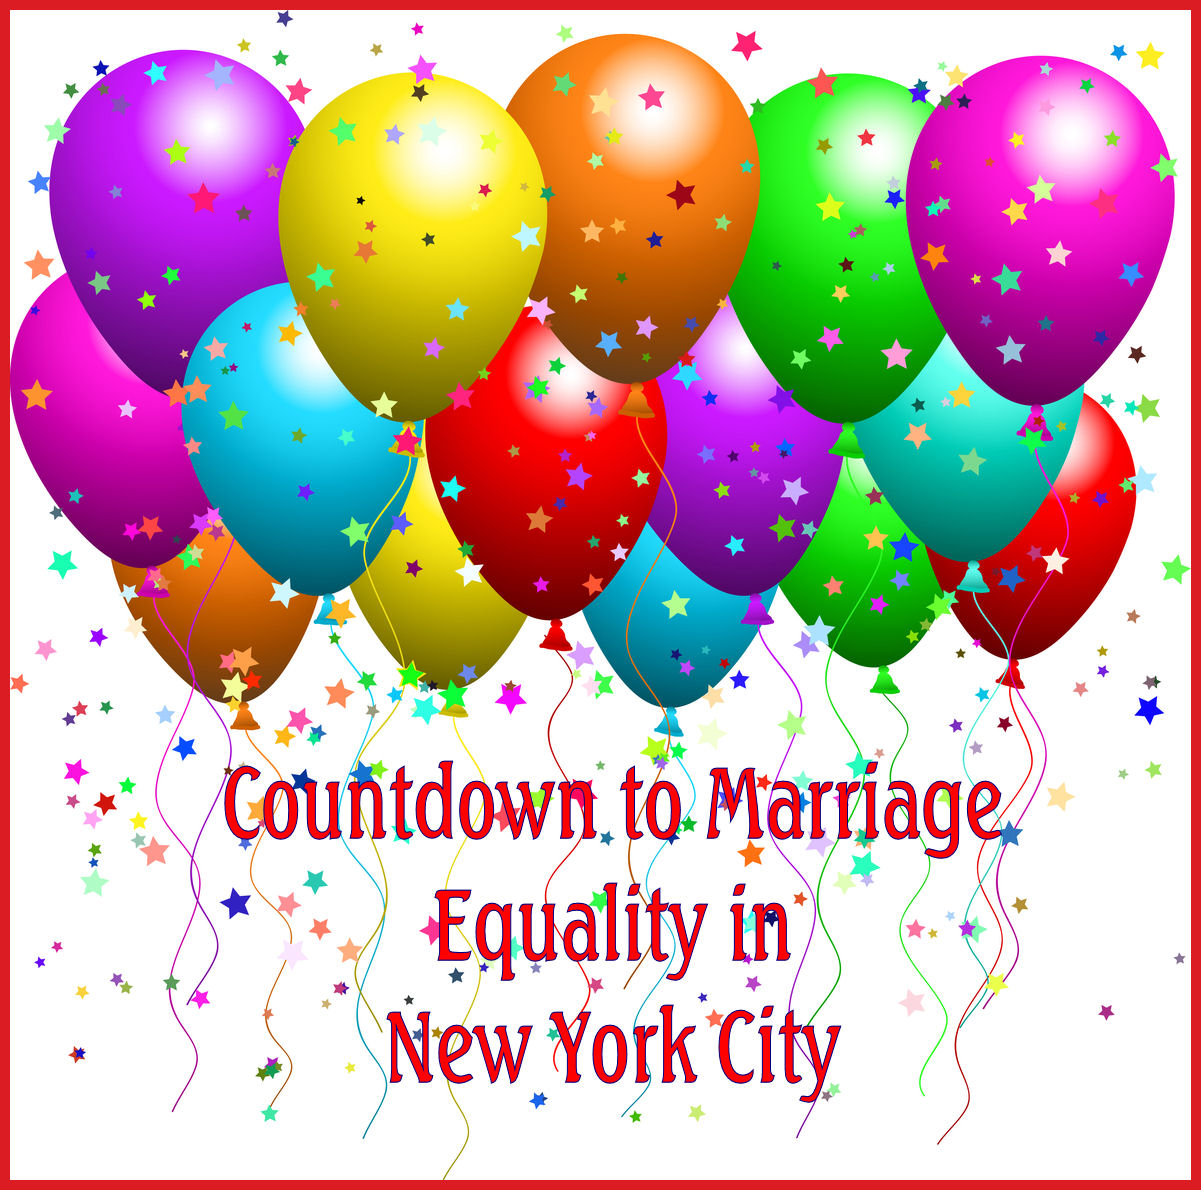 Countdown to Marriage Equility in NYC